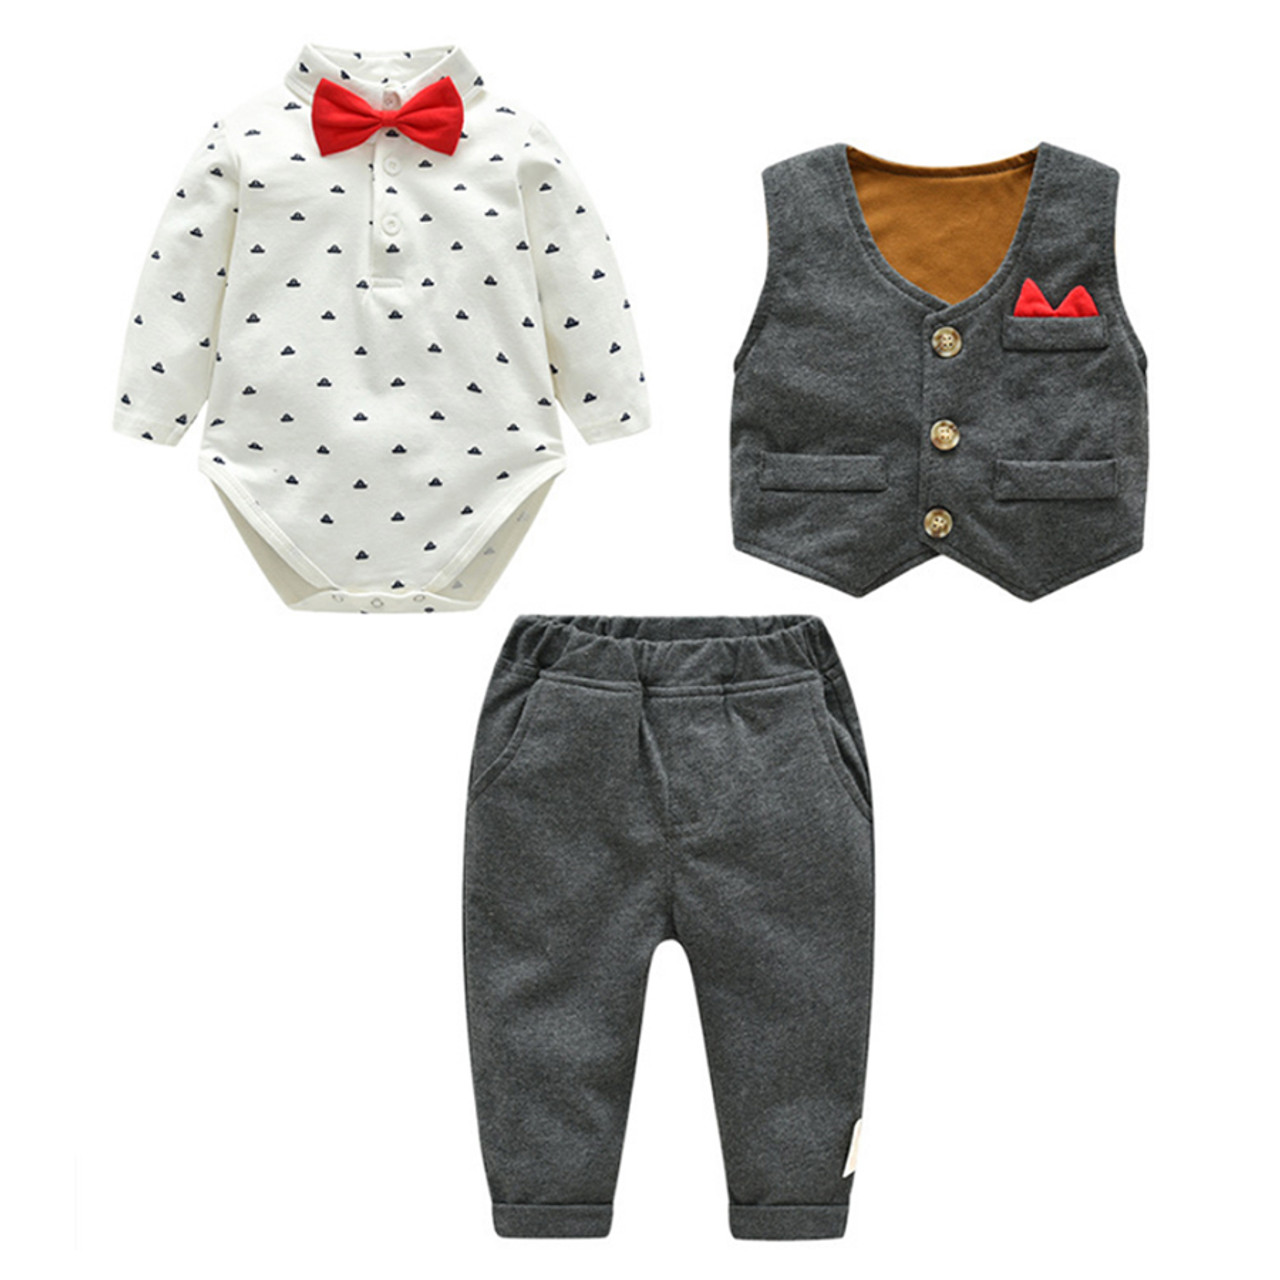 feb492487 ... IYEAL Baby Boy Clothes 3 Pieces Suits Vest + Tie Rompers + Pants  Fashion Gentleman Kids ...